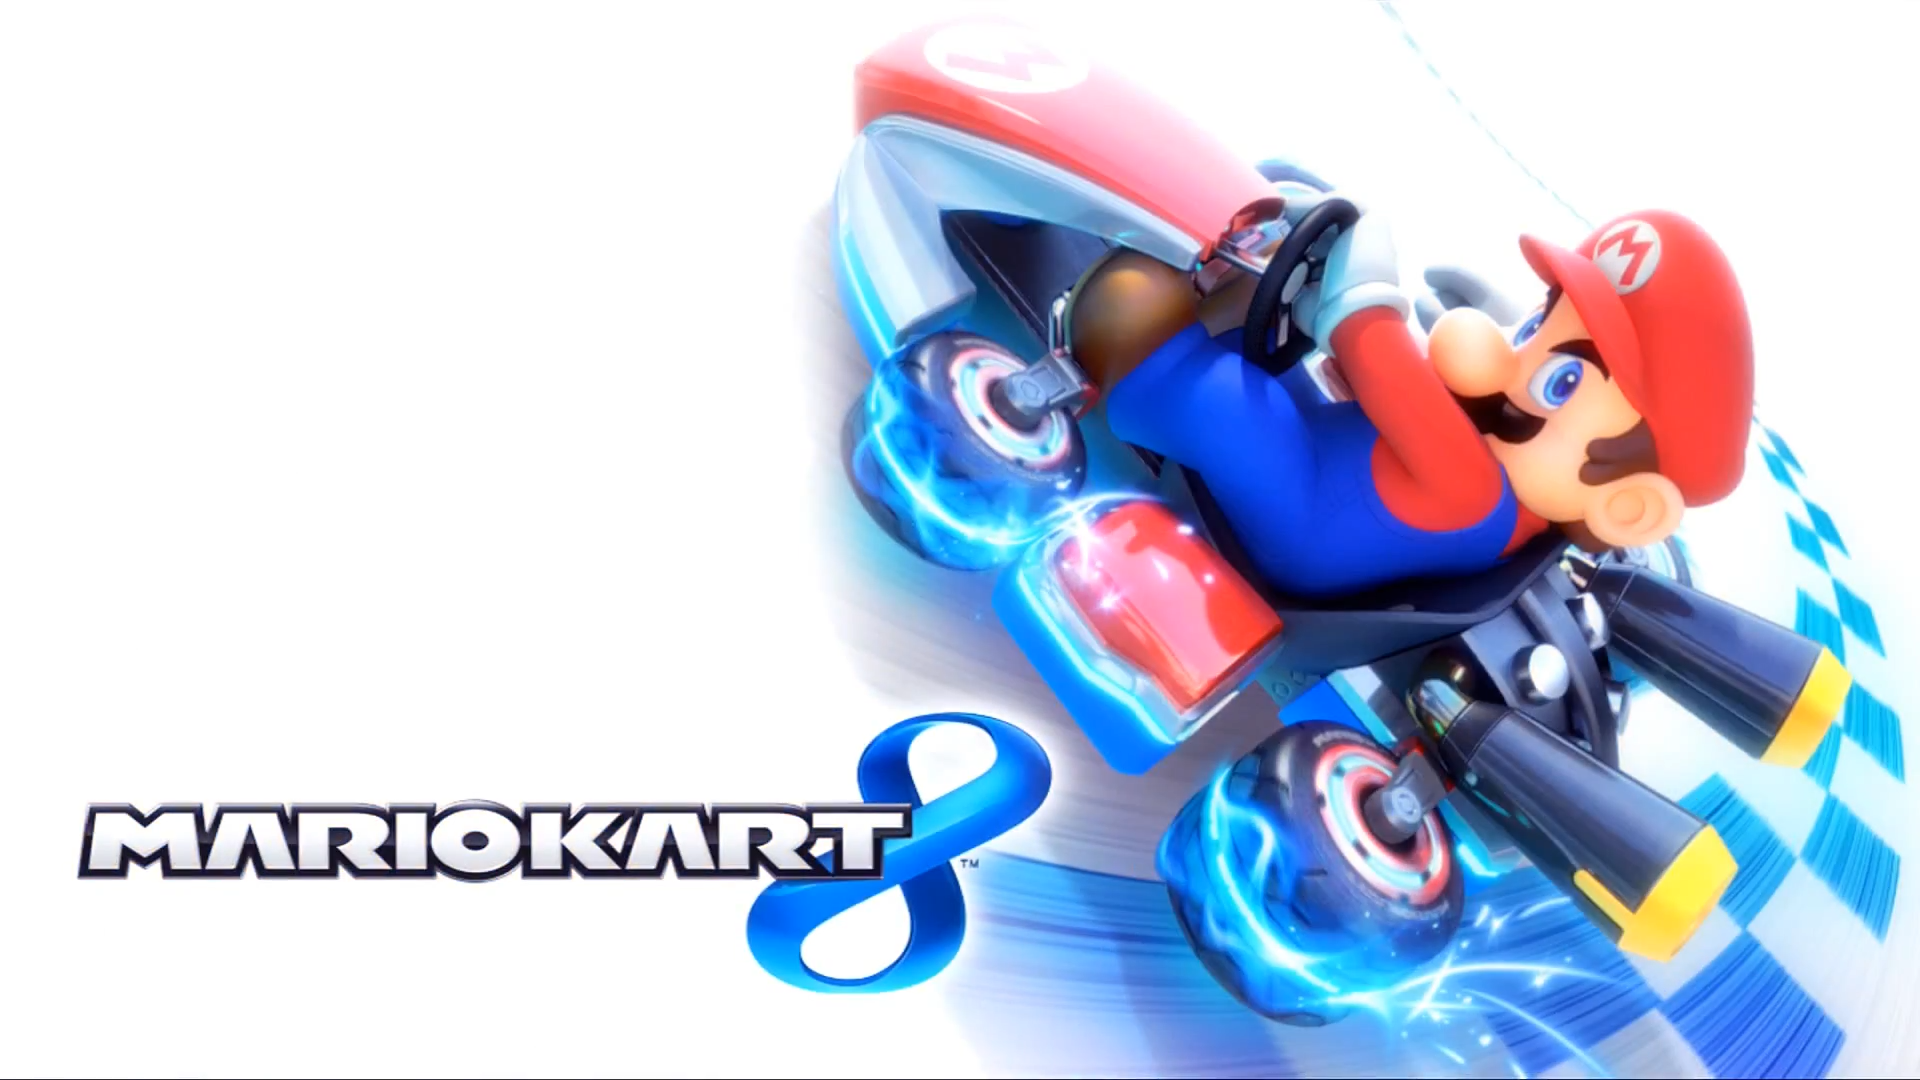 Mario Kart 8 Title Screen (Mario).png - Mario Kart PNG HD